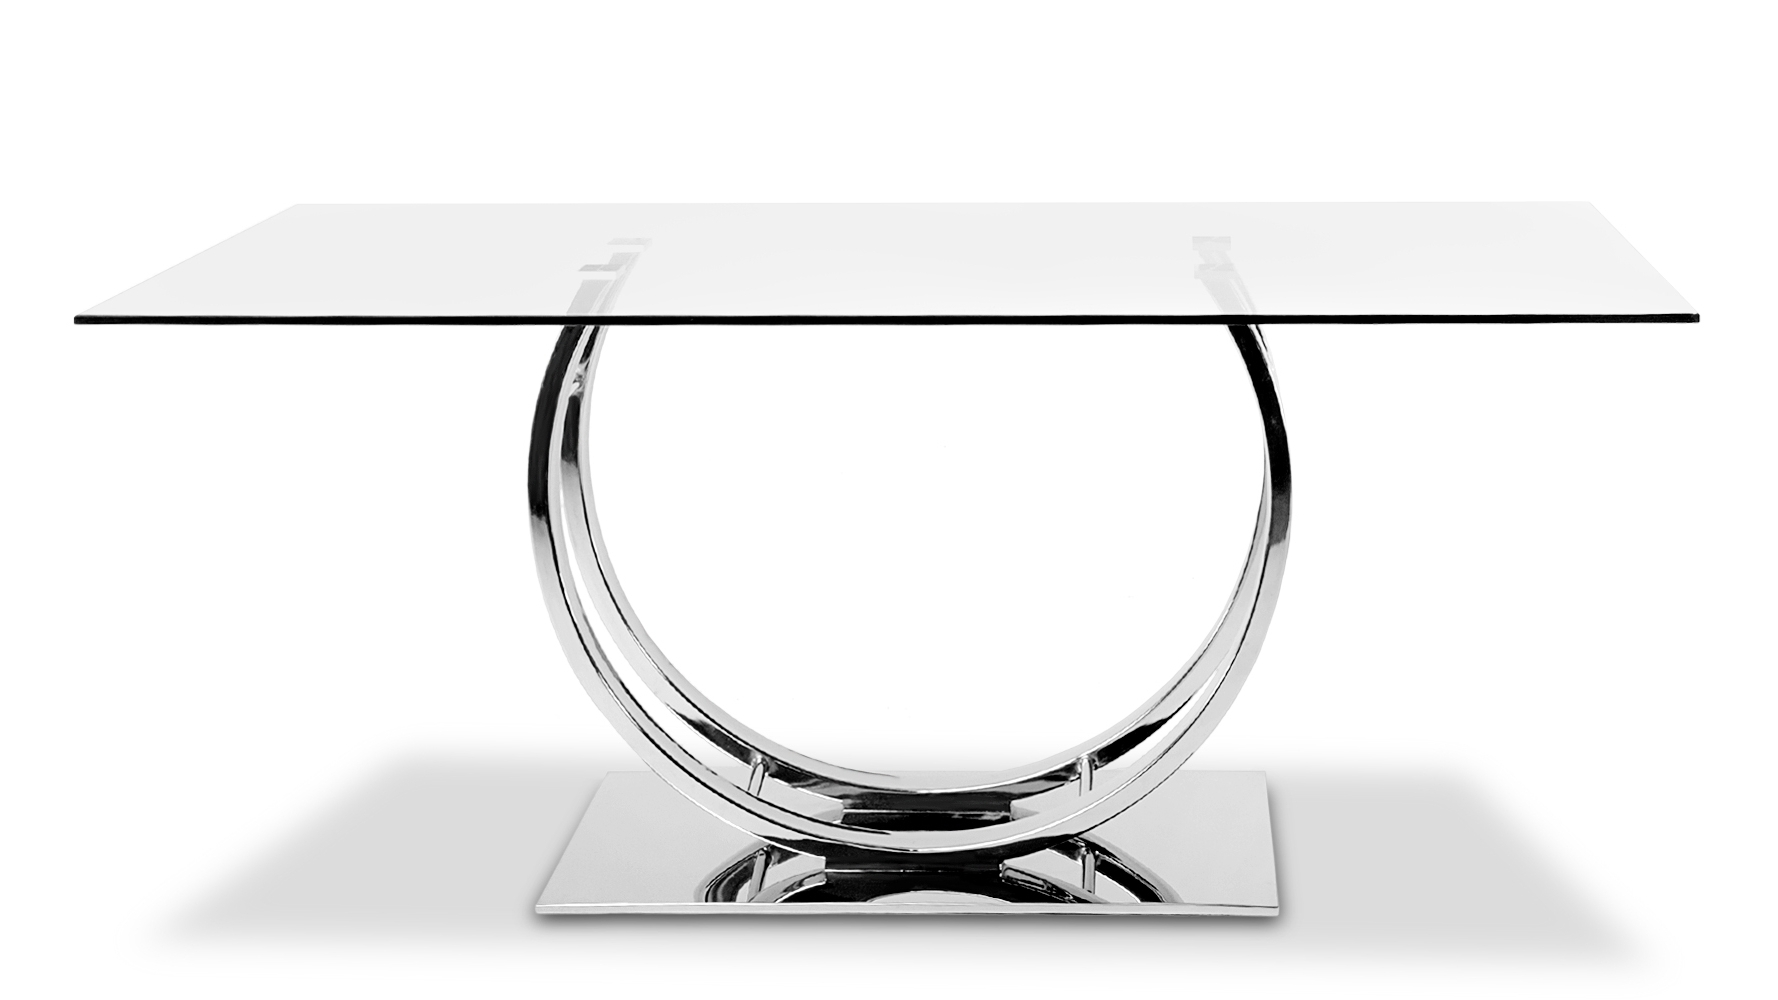 Chrome Dining Tables In Recent Palazzo Glass Modern Dining Table With Polished Chrome Base (View 3 of 25)